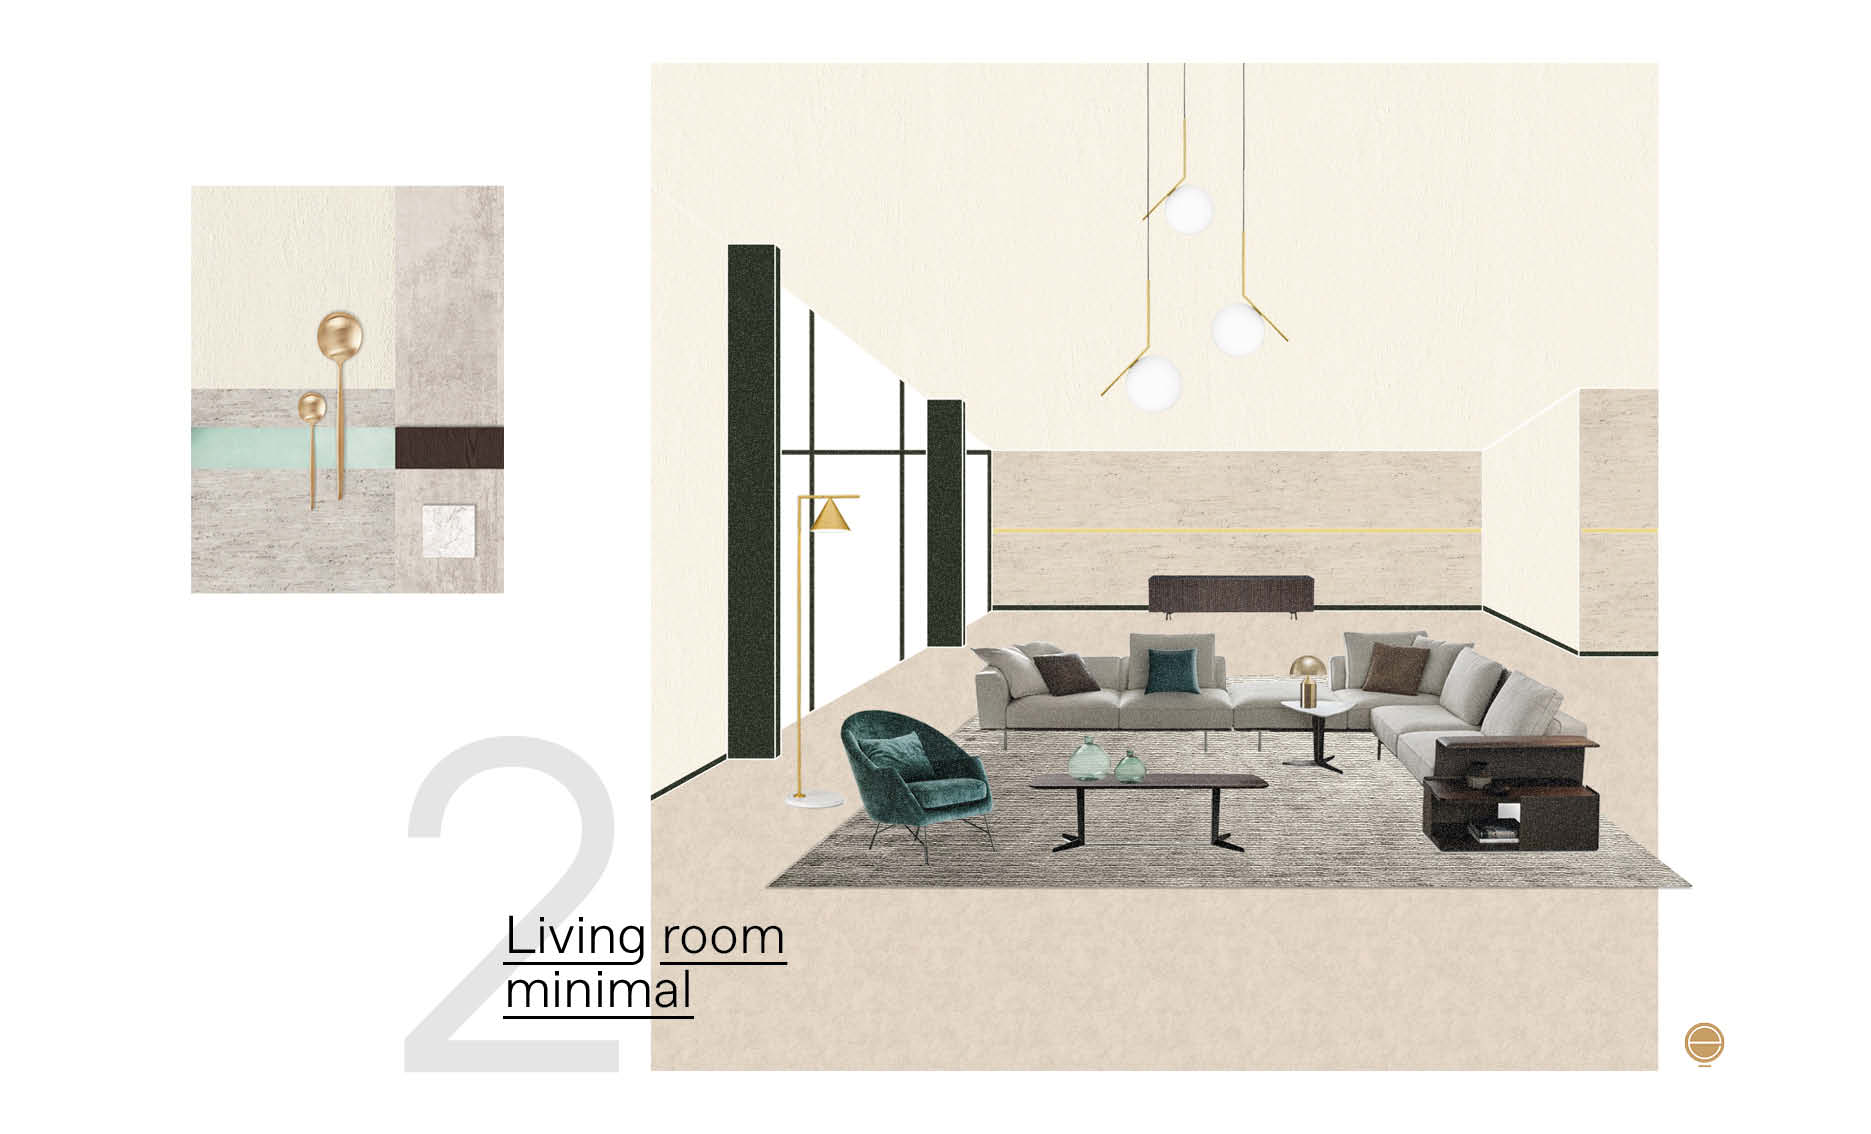 Italian mdoern living room designs by Esperiri Milano team of Italian interior designers